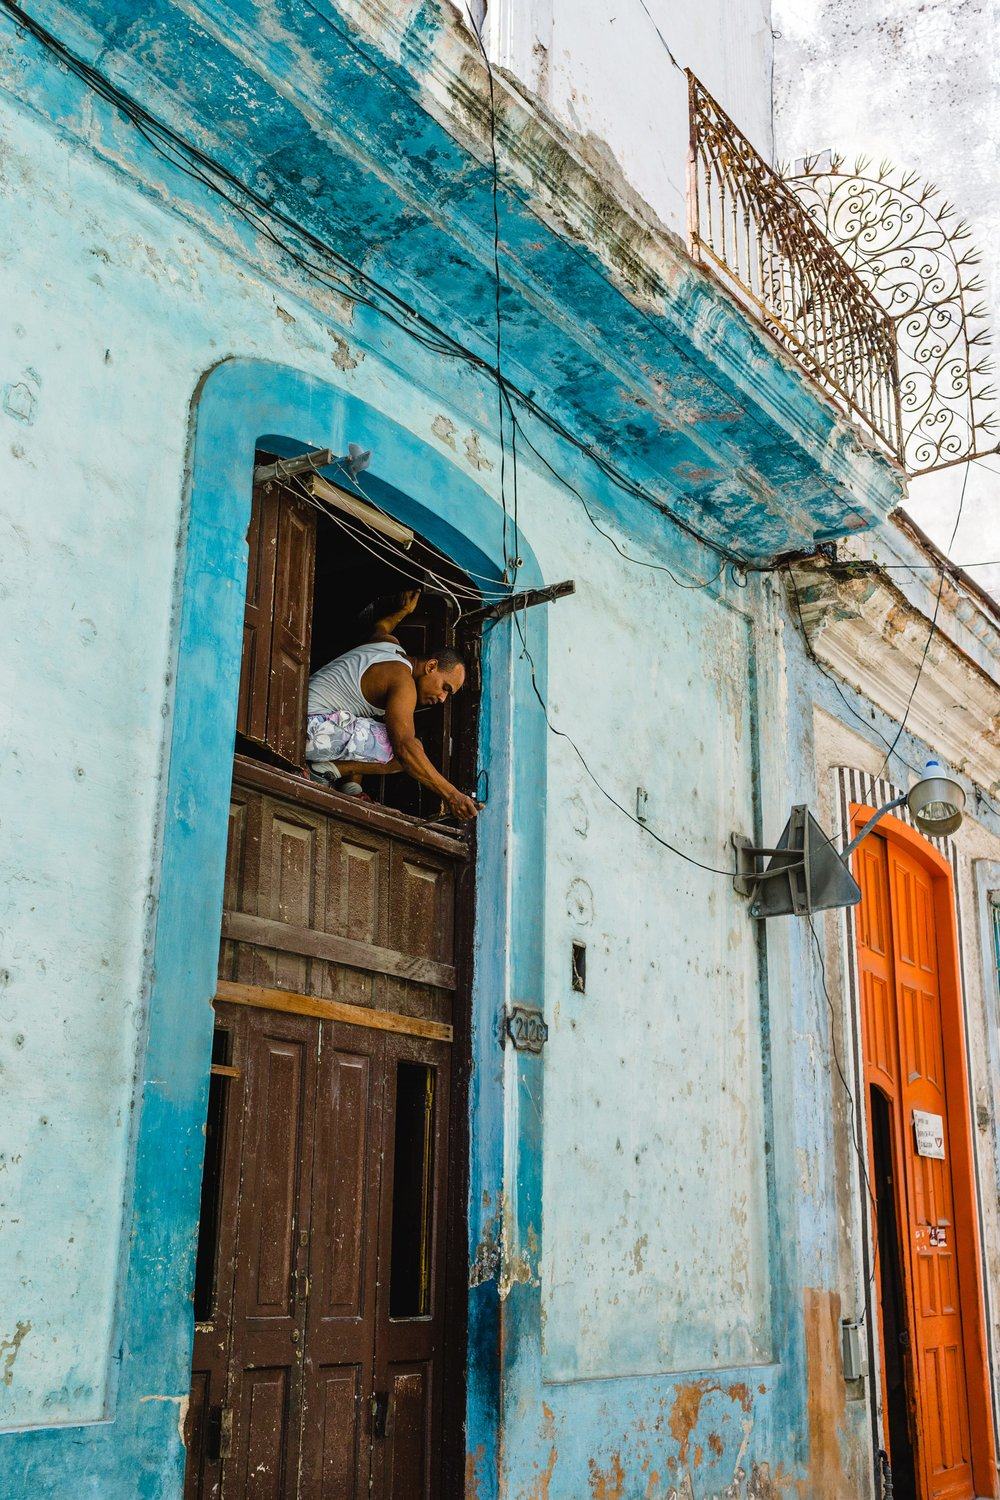 SpringMorrisPhotography_Travel_Havana_Cuba-1-8.jpg